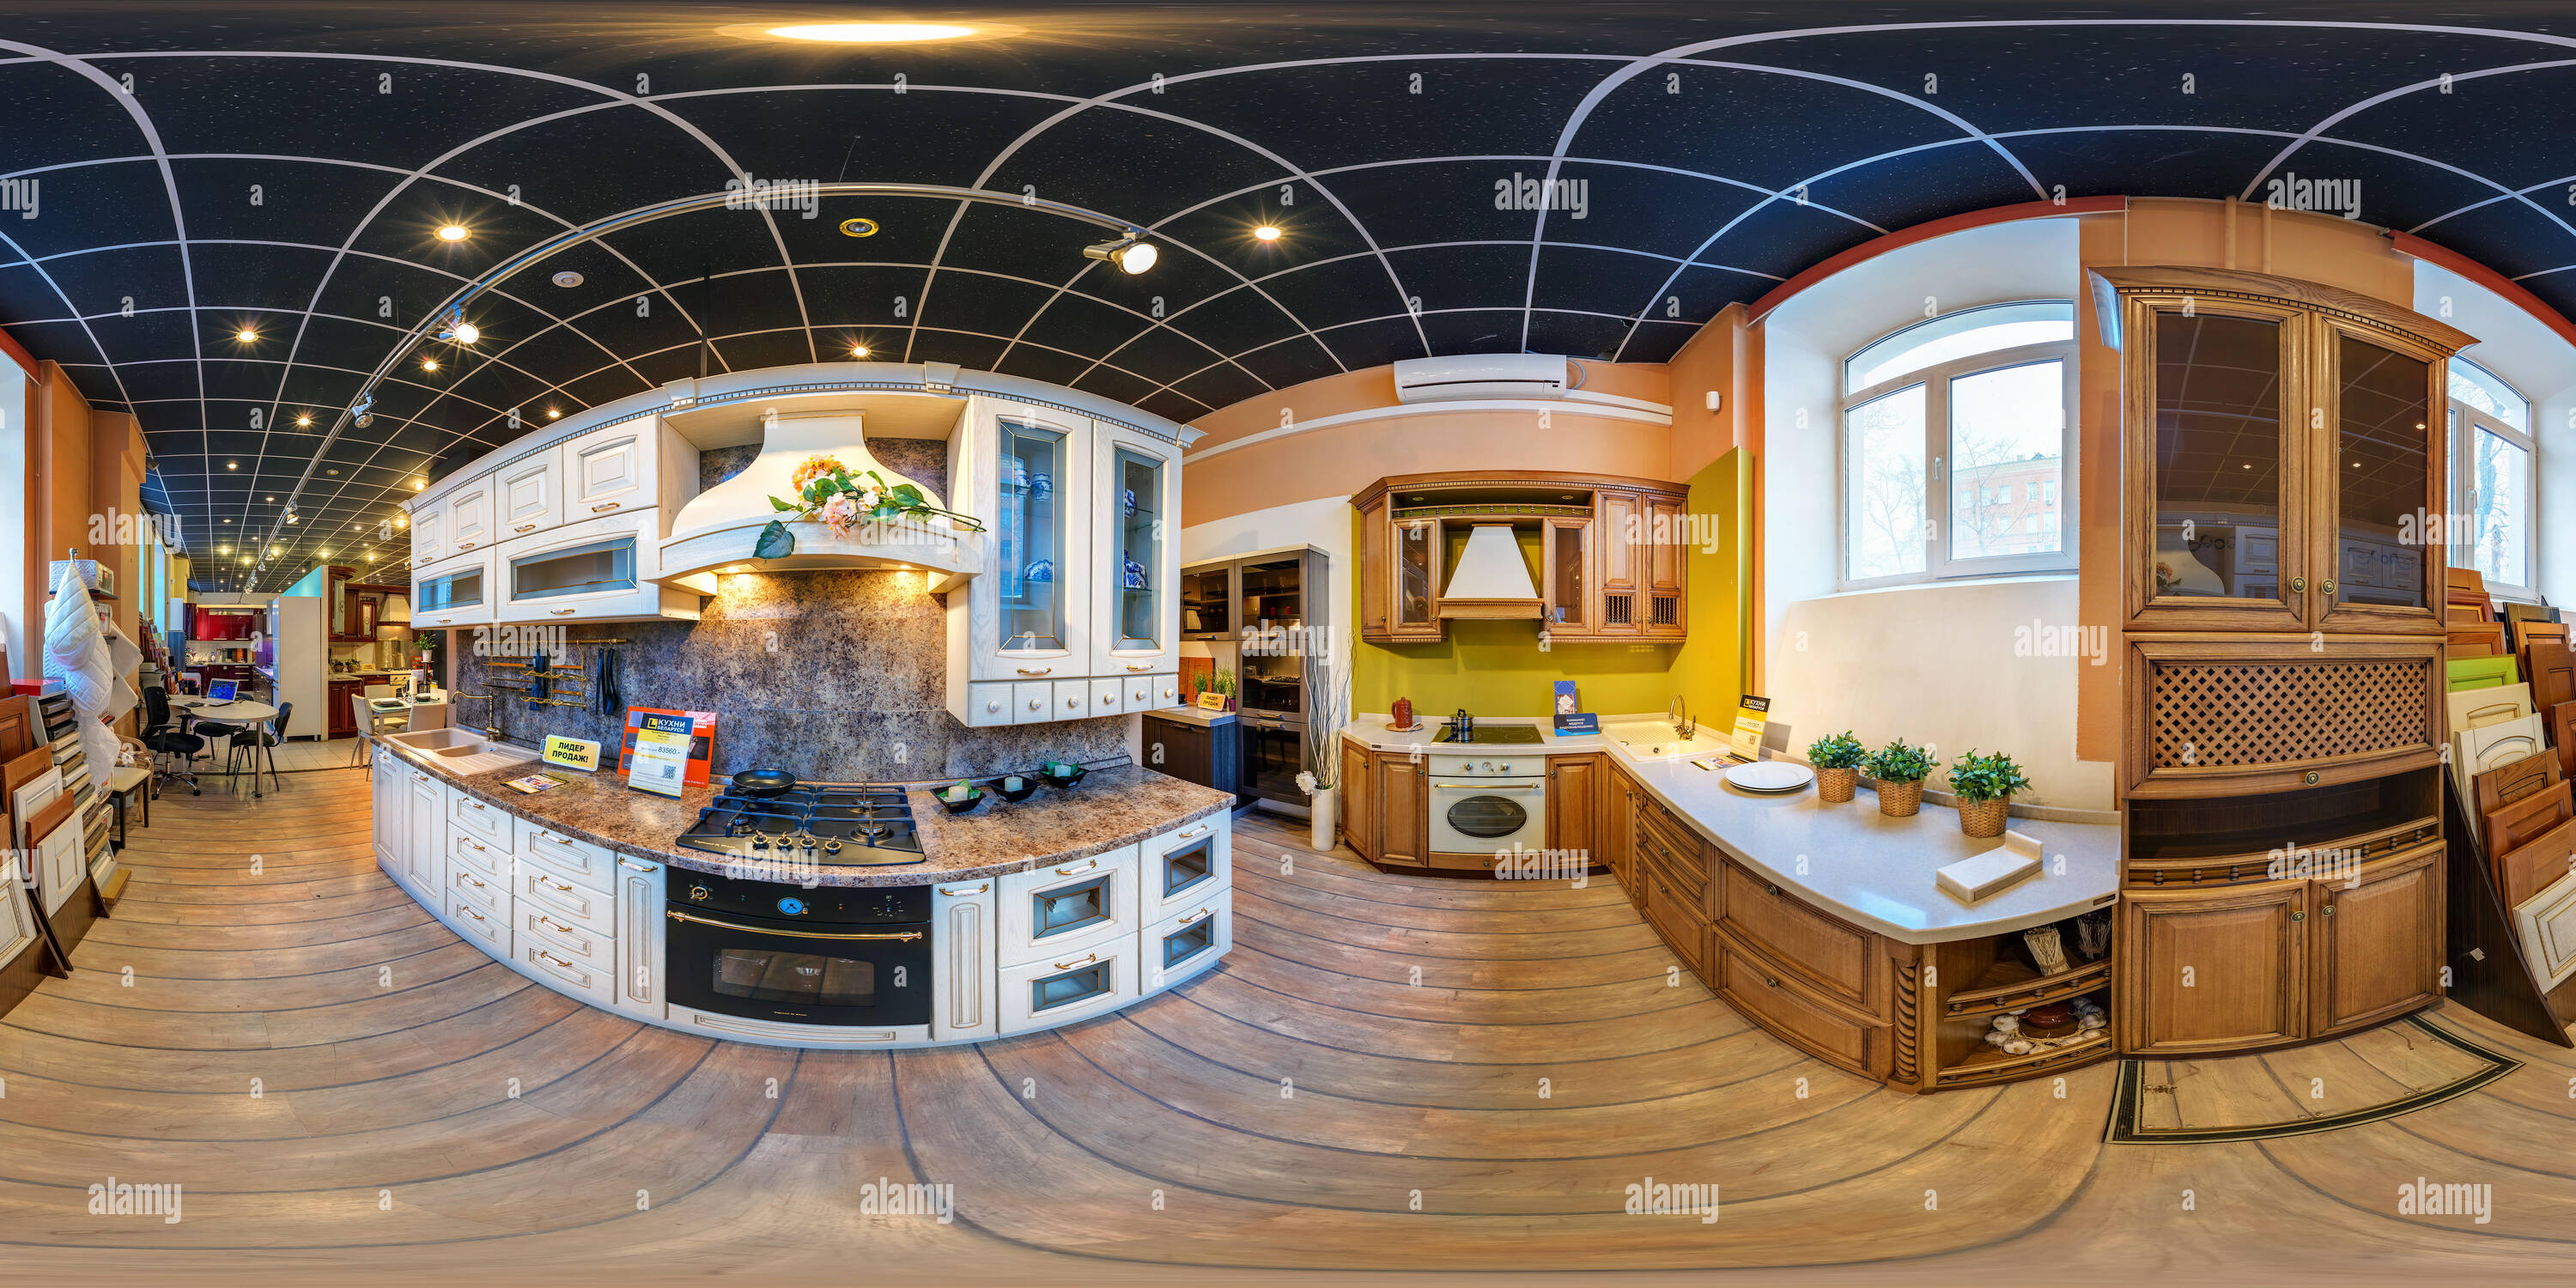 Moscow russia february 17 2013 panorama interior modern furniture kitchen store full spherical 360 by 180 degrees seamless panorama in equirecta